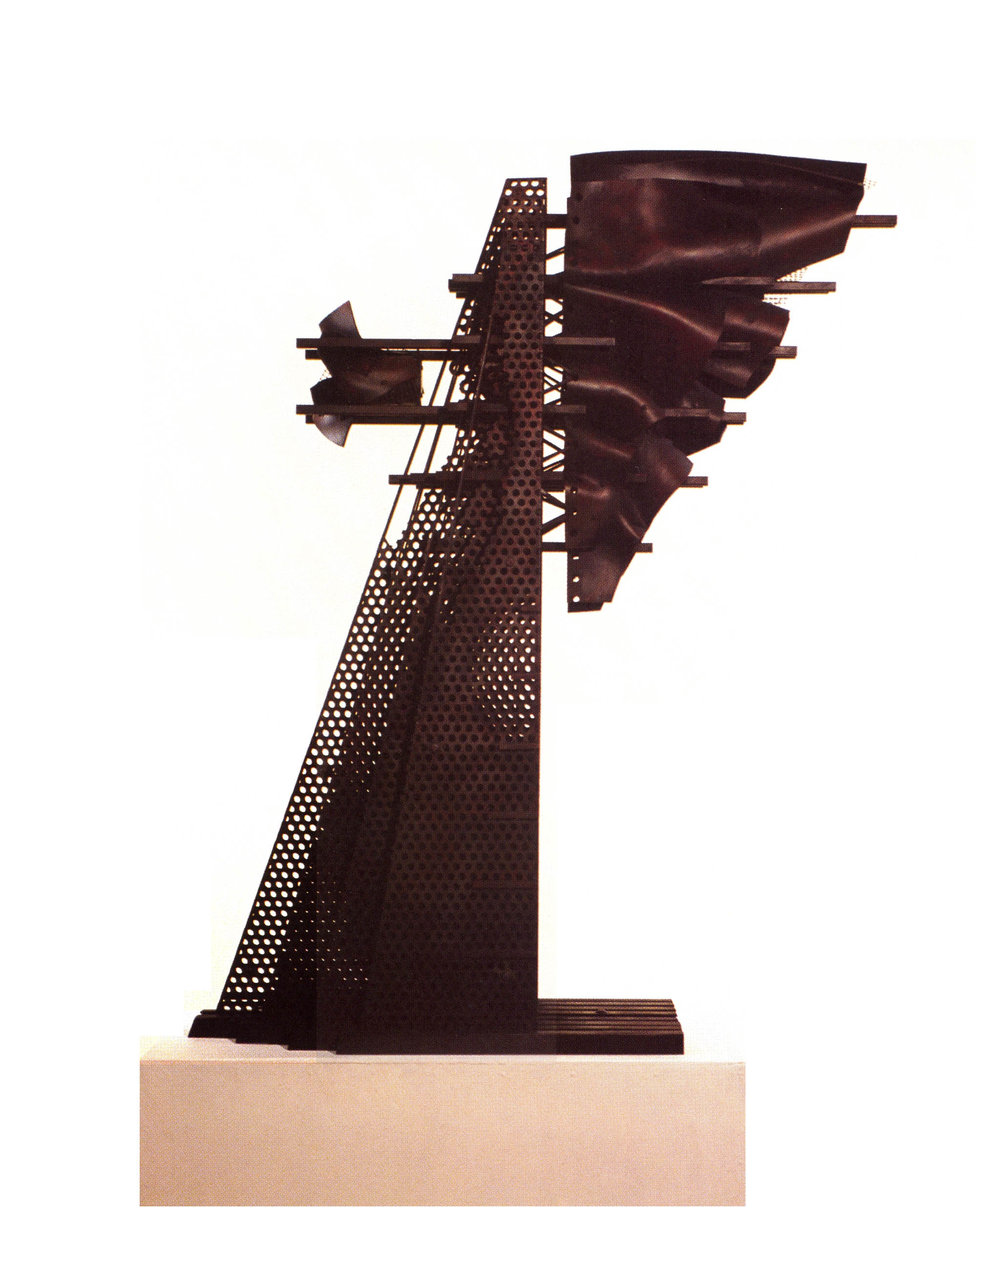 Alexy Klimov   Perforated Motion (Side View)  , Metal, Plastic, Automotive Paint, 45'' x 32'' x 12'', 2003